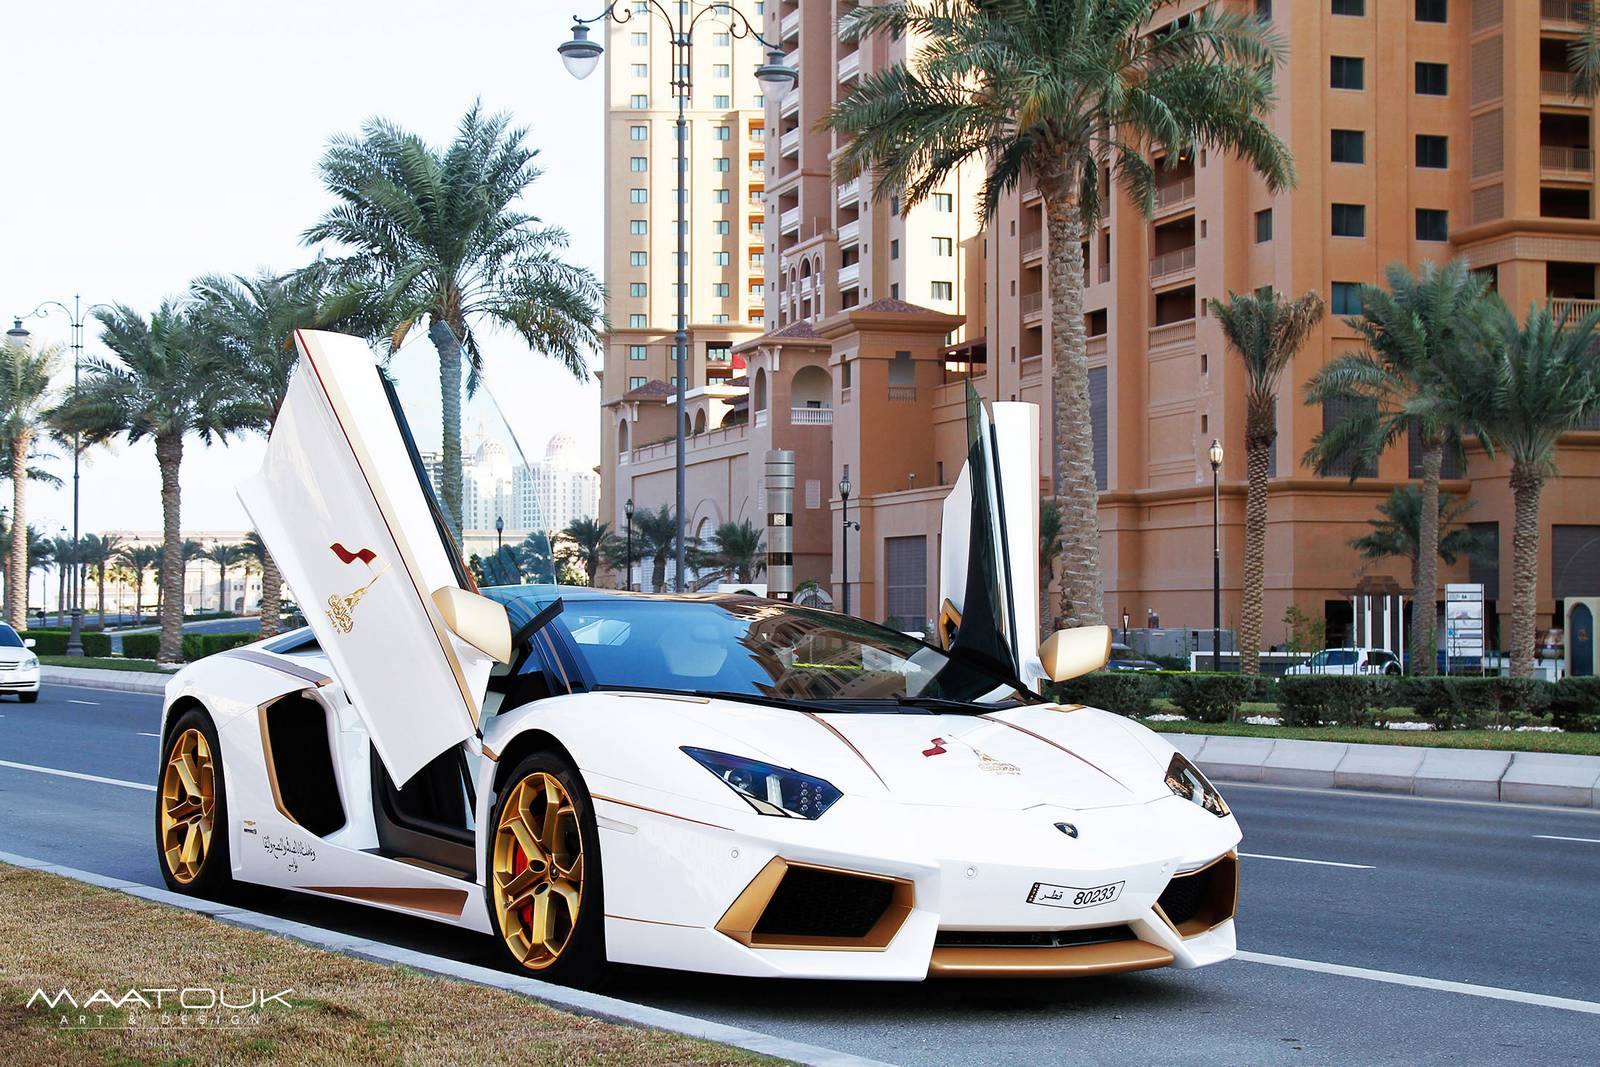 Luxury Cars For Sale In Doha